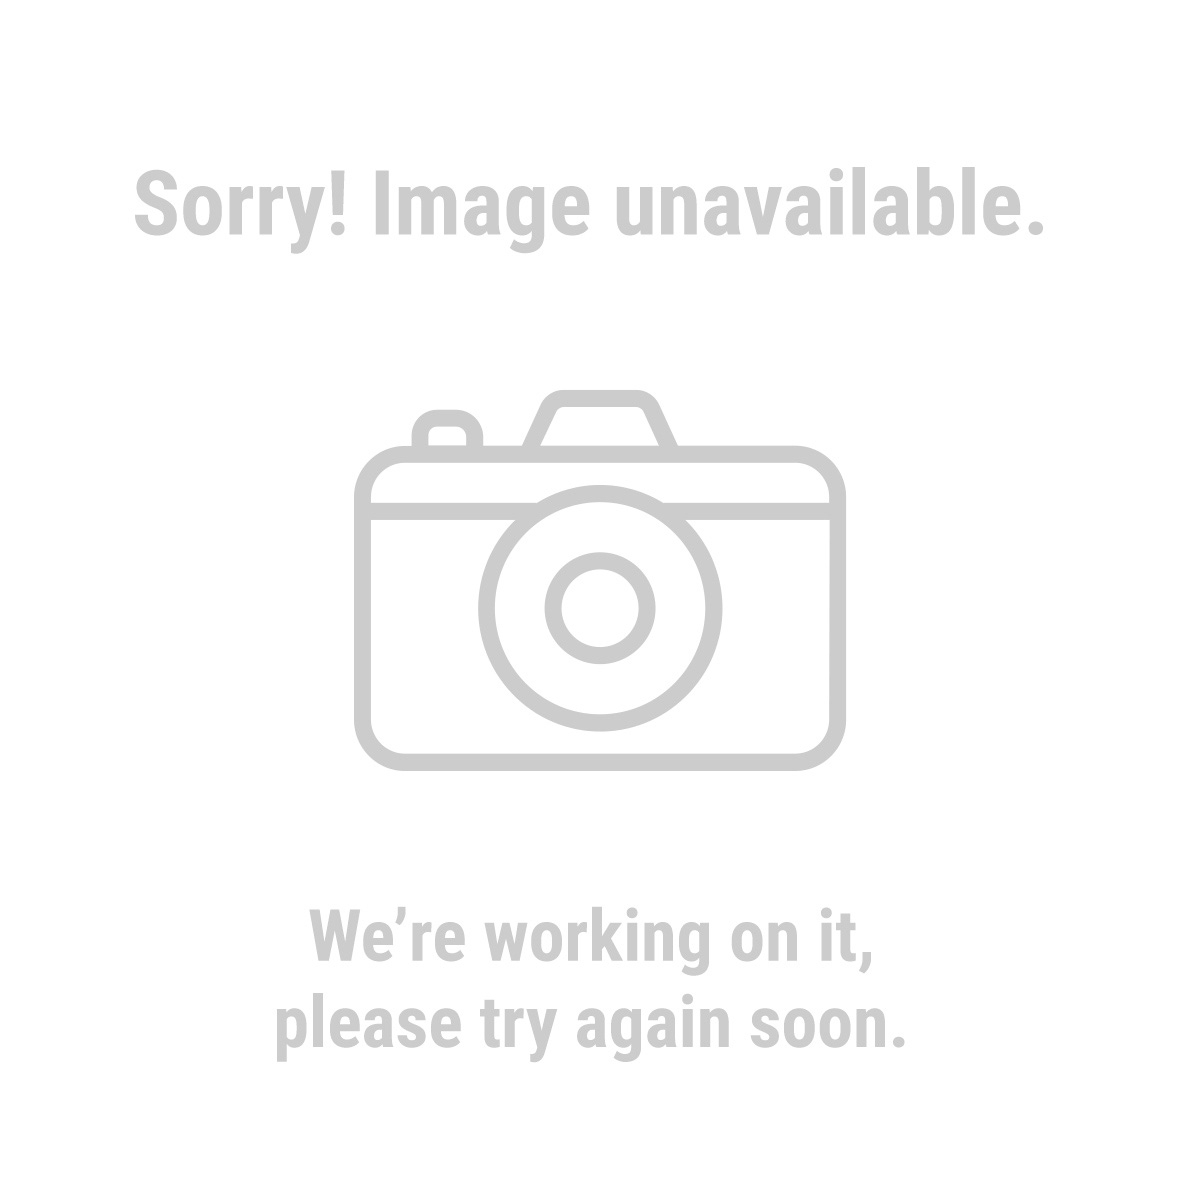 13 Quot X 5 Quot Heavy Duty Pneumatic Tire